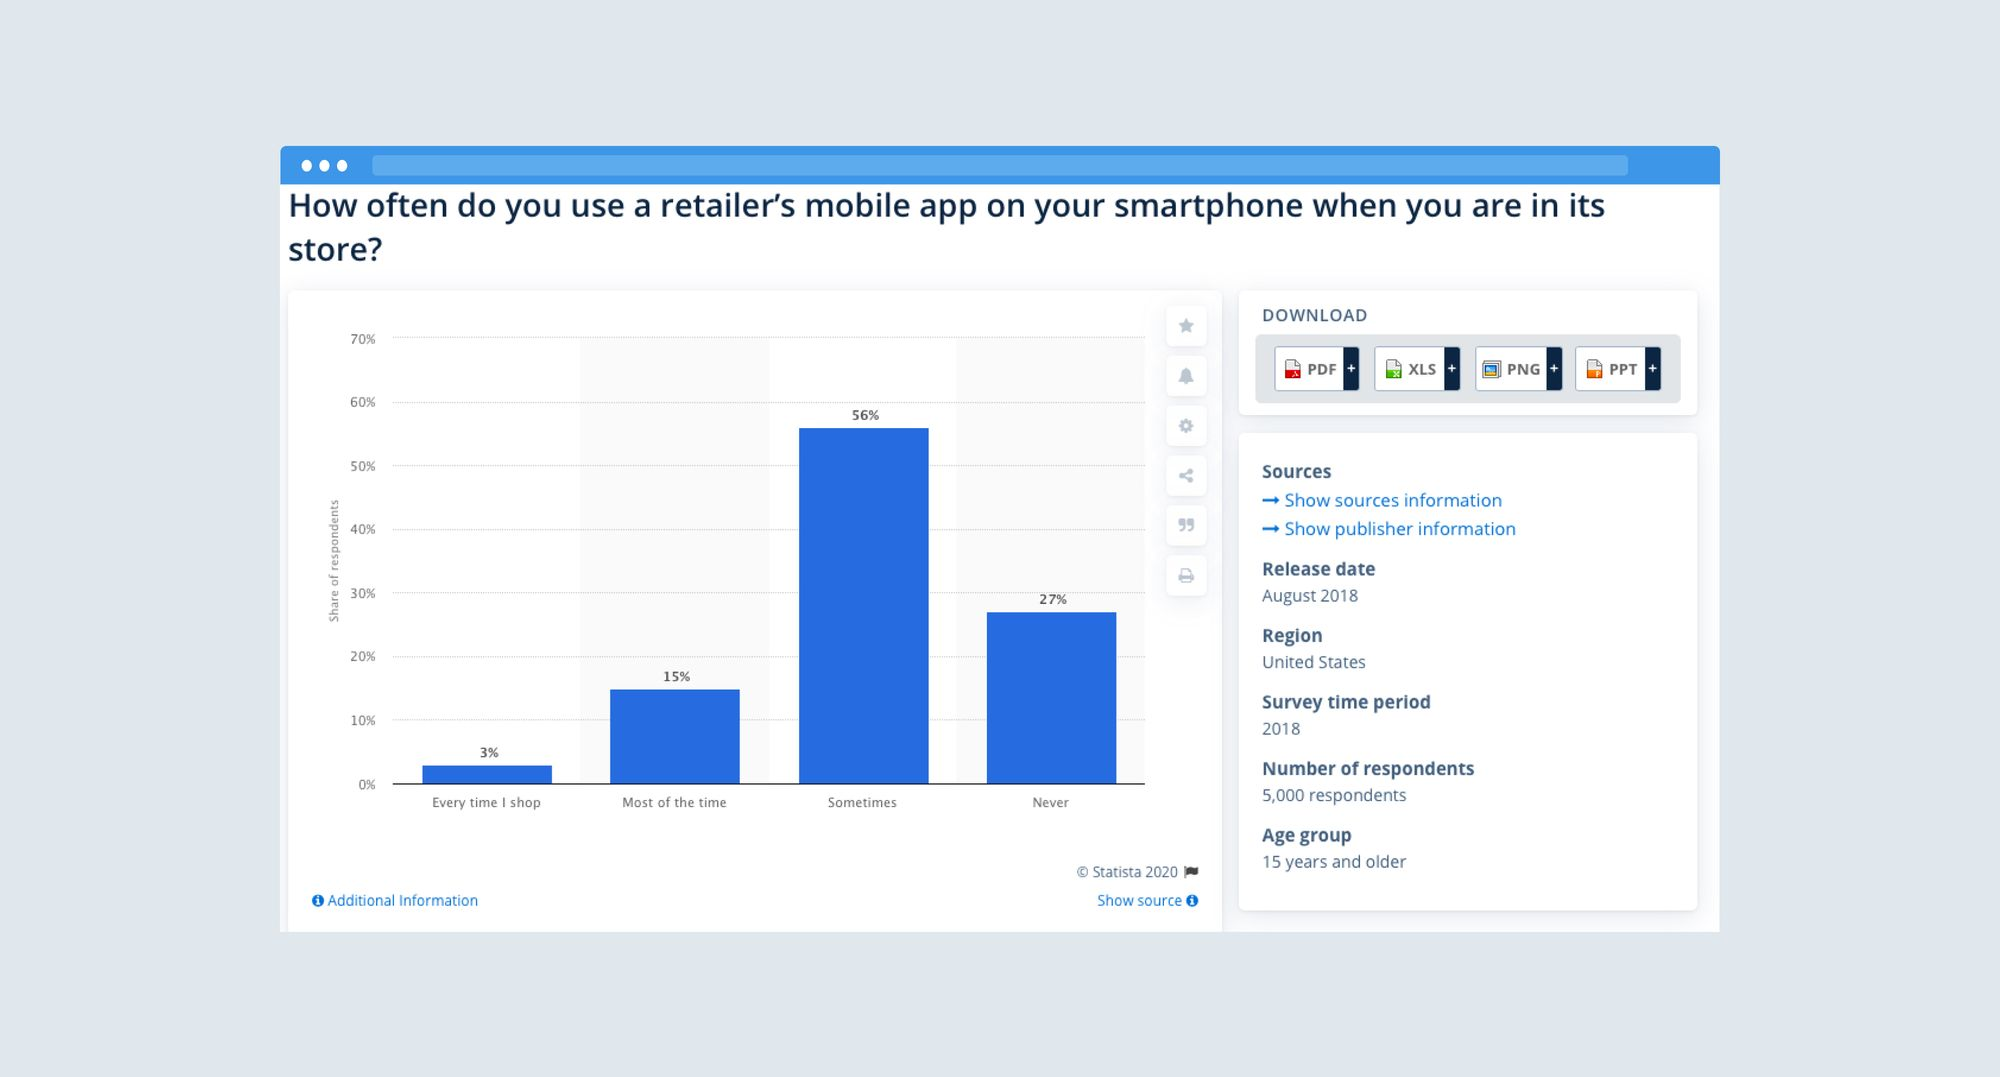 Using a retailer's mobile app on the smartphone